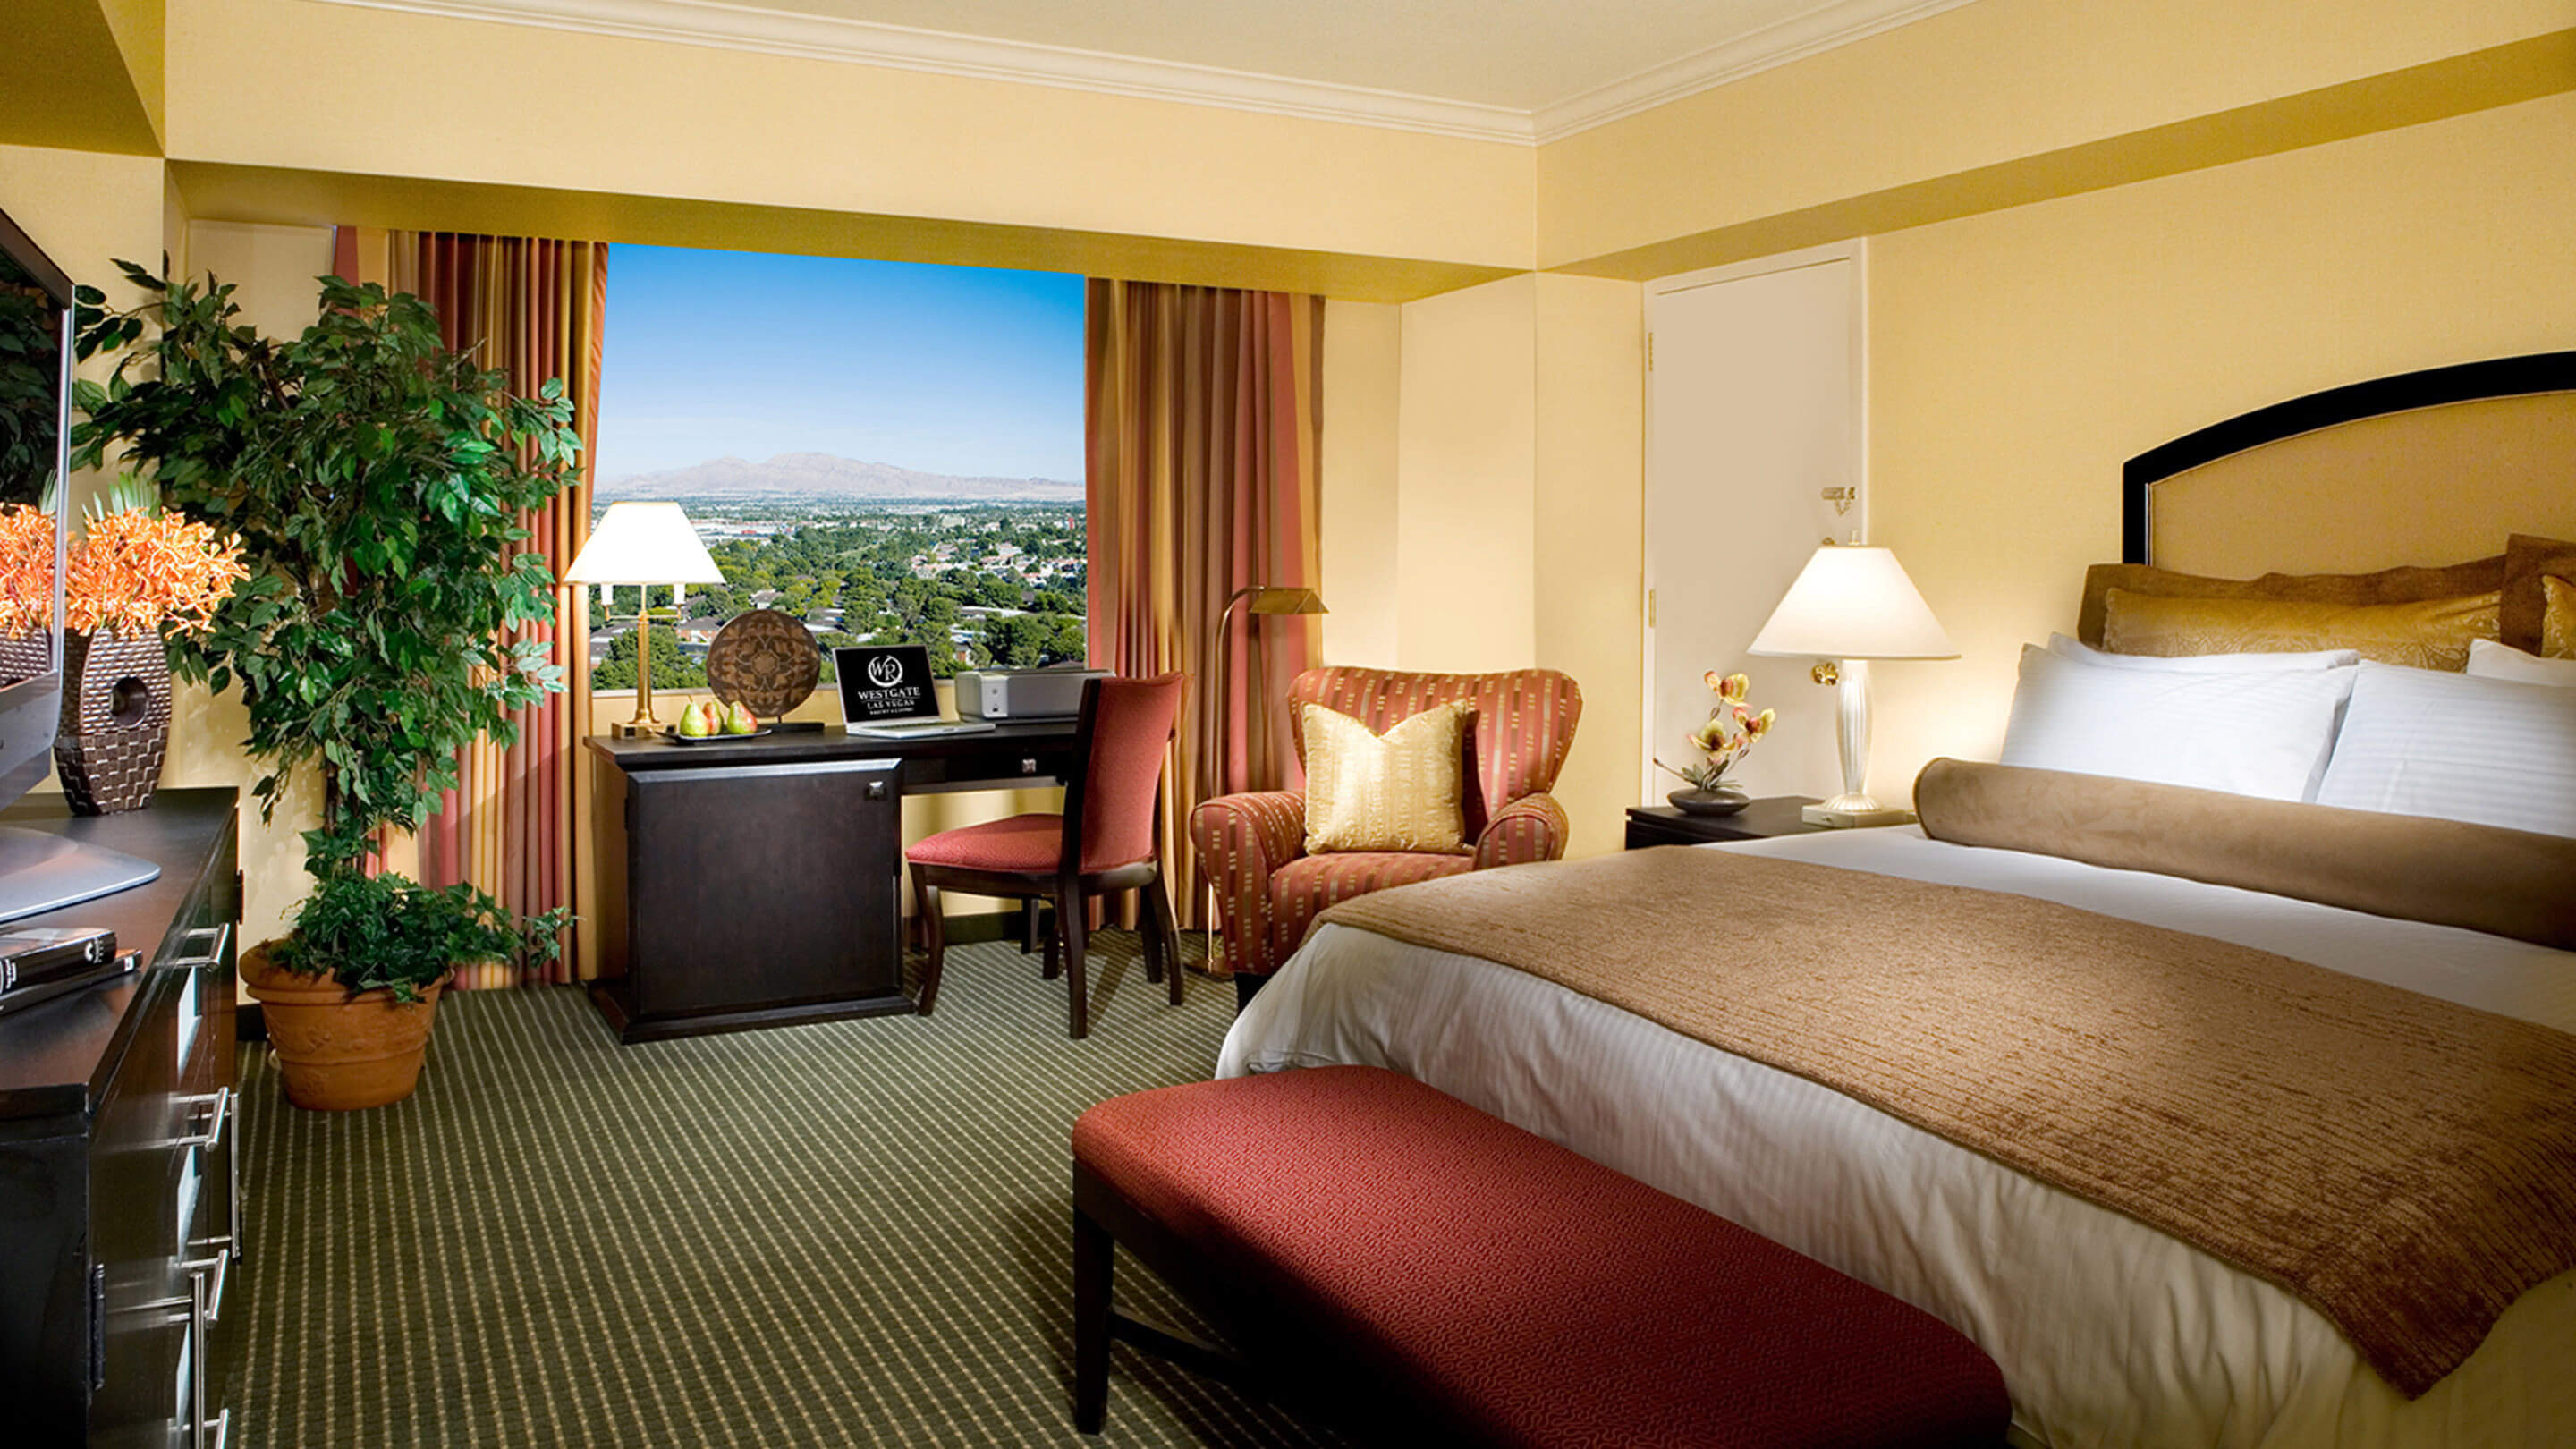 Las Vegas Hotels Suites 3 Bedroom Westgate Hotel In Las Vegas Offers Spacious Accommodations